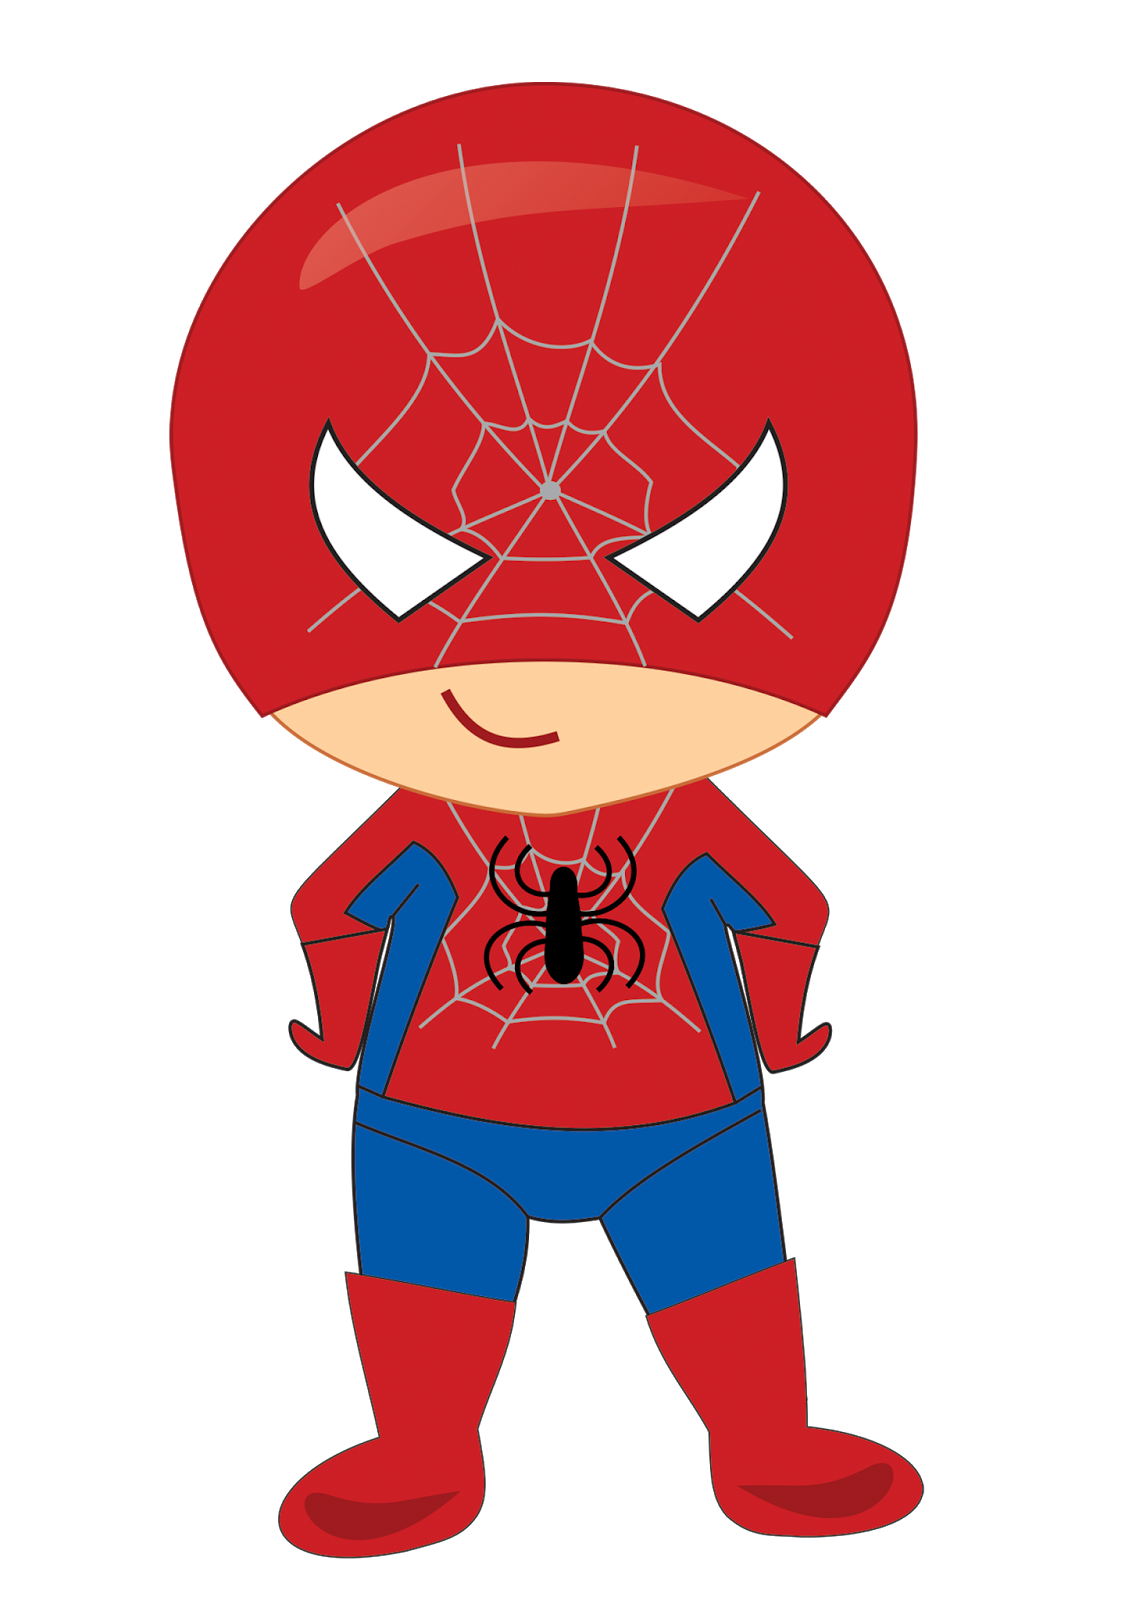 Baby superheroes niver pinterest. Number 1 clipart superhero